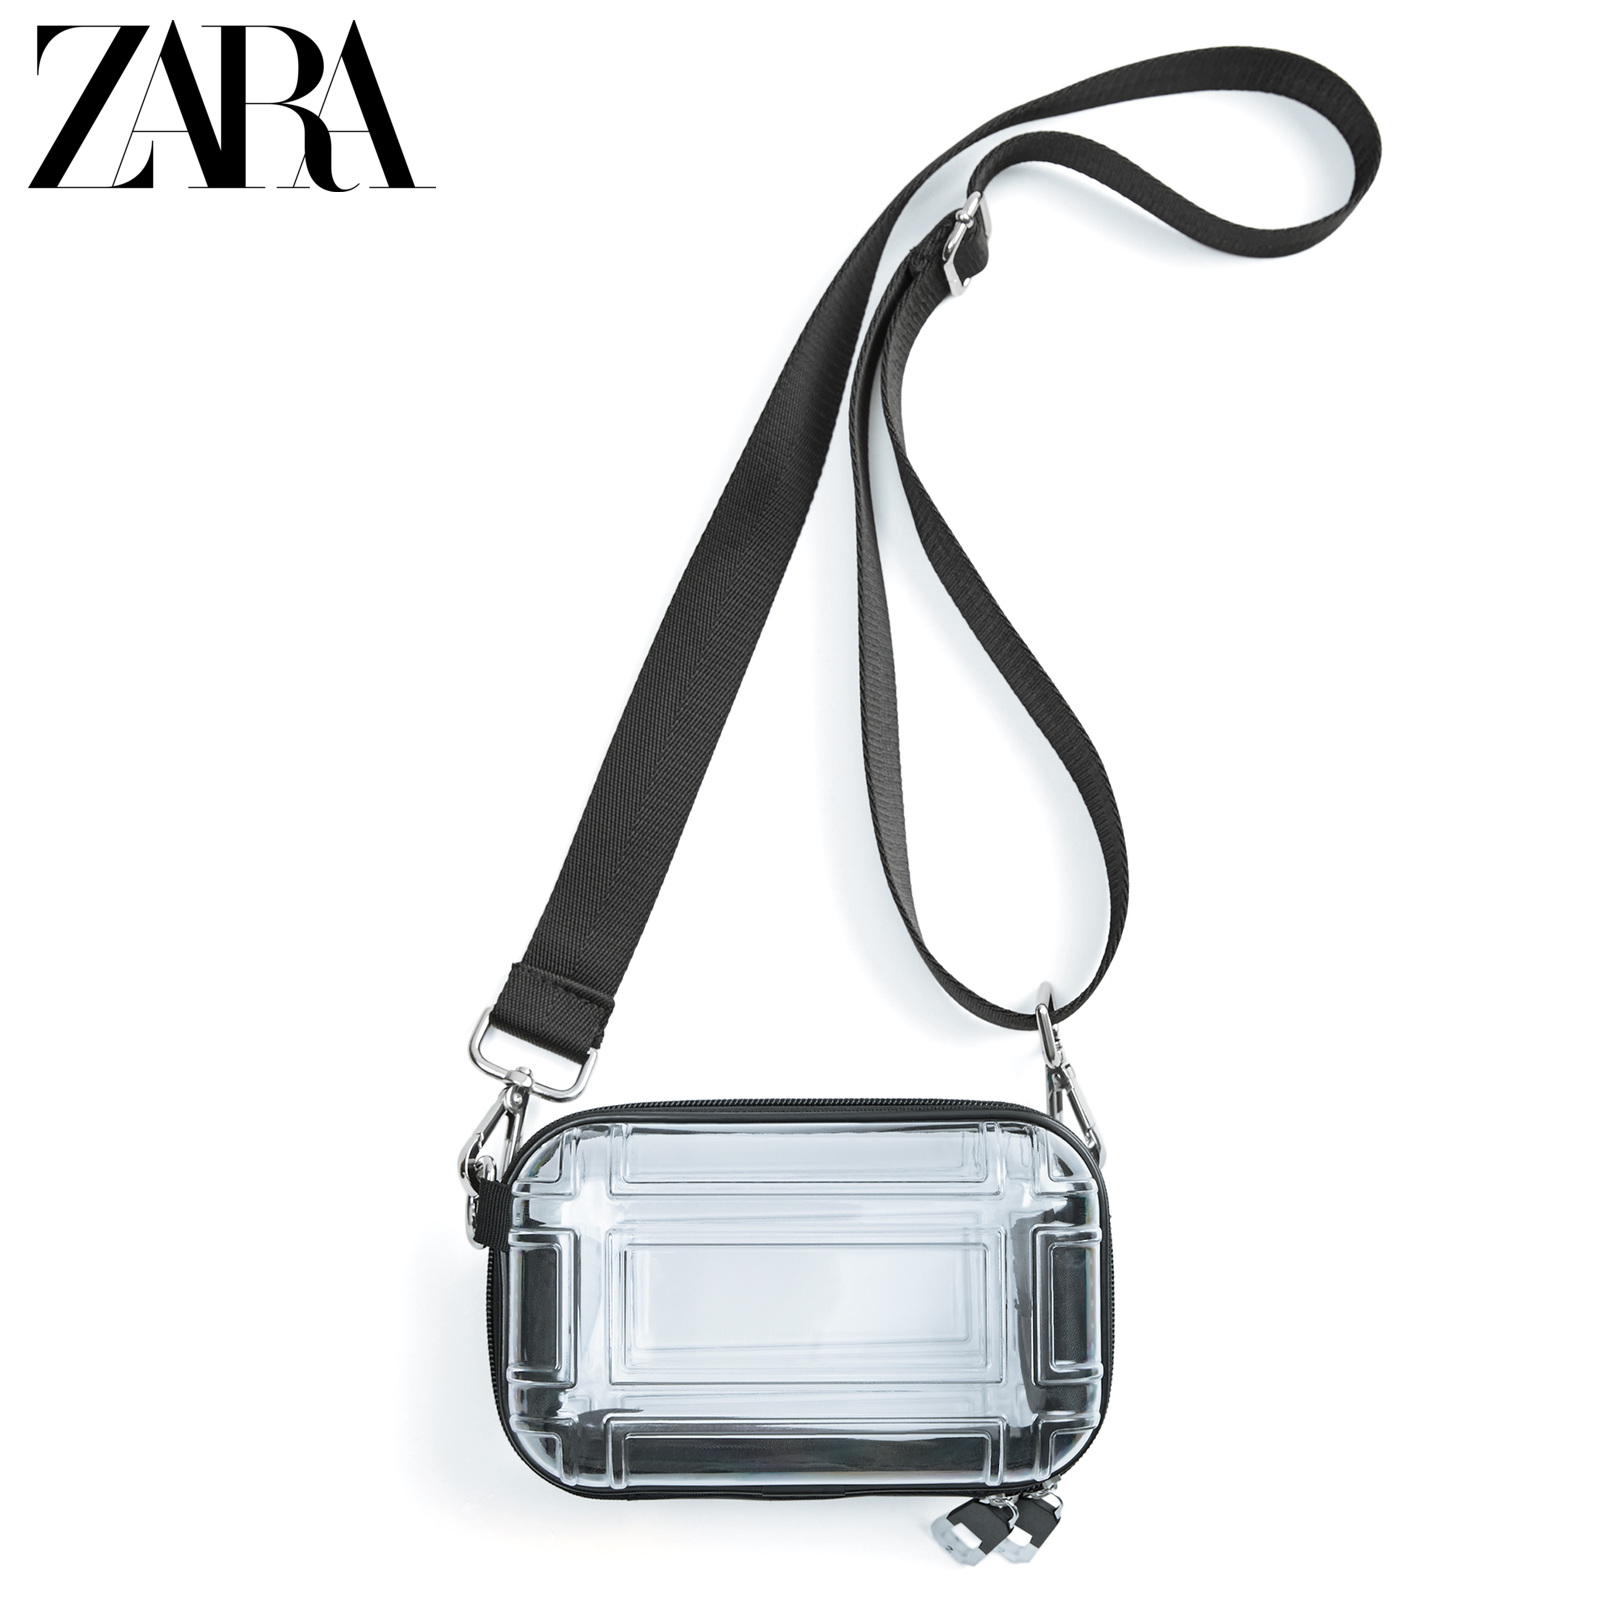 Zara new men's bag transparent hard box mini envelope bag Waist Bag Messenger Bag 13918520087